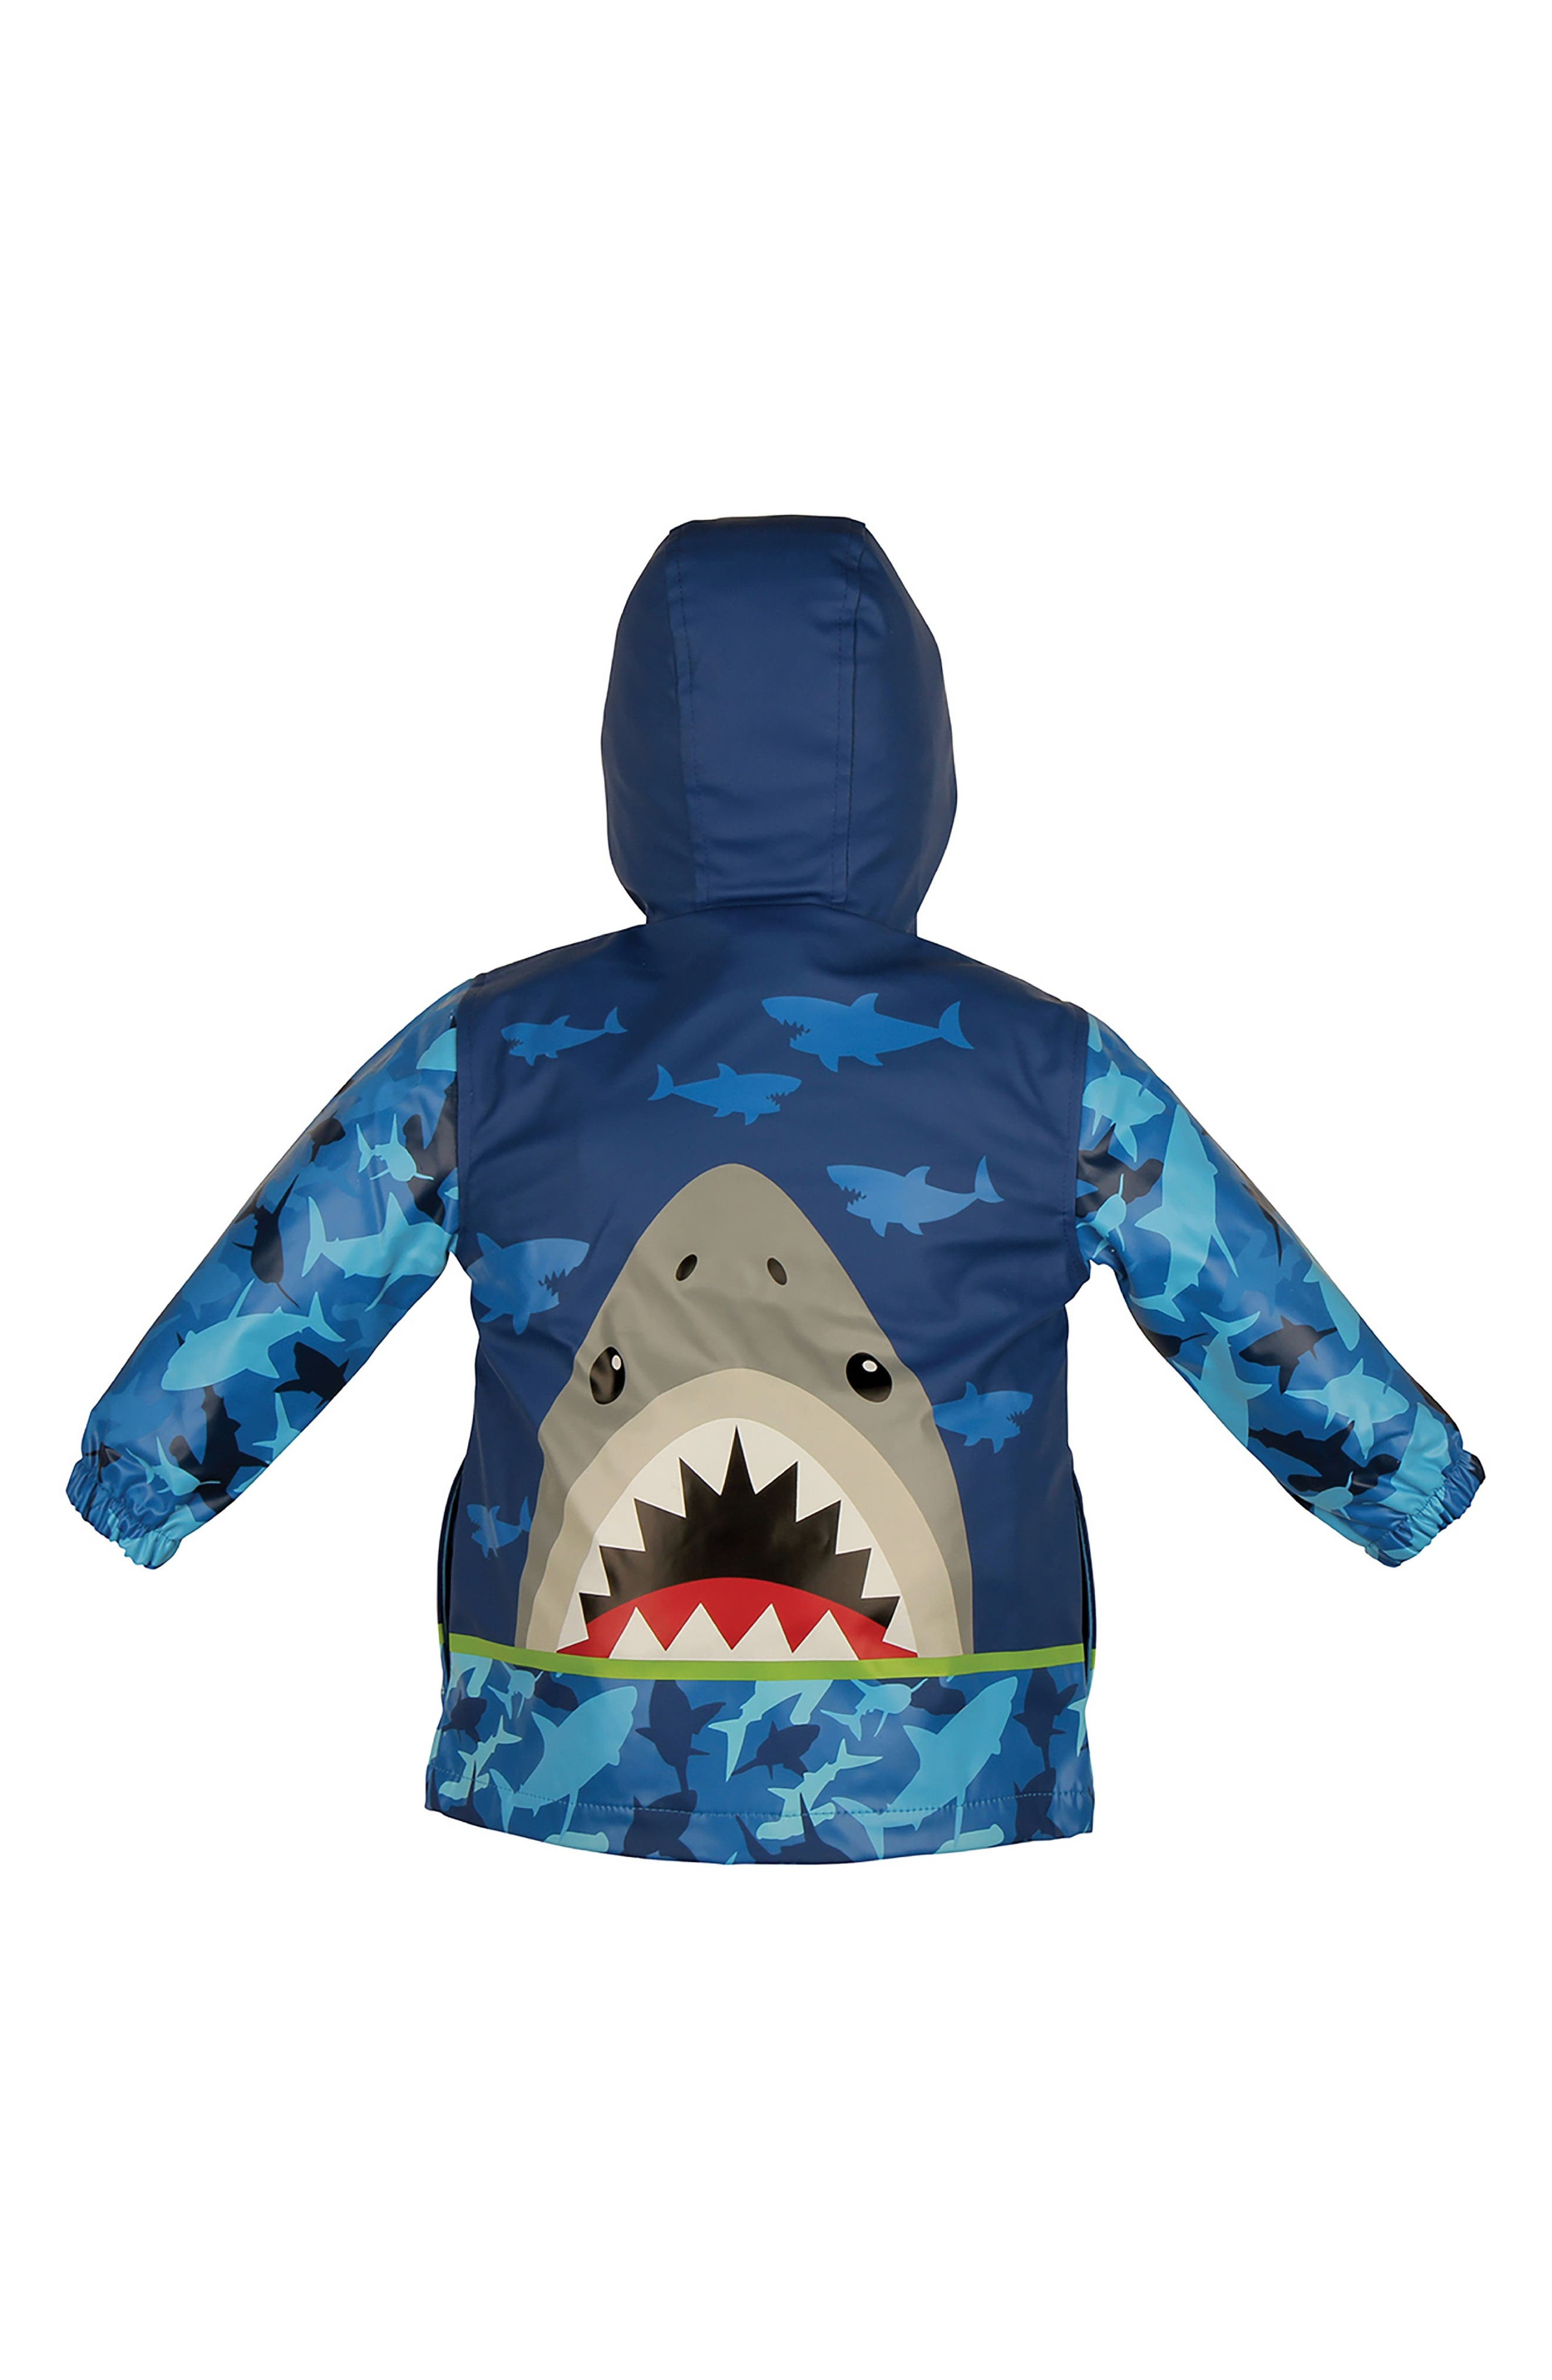 Shark Raincoat & Umbrella Set,                             Alternate thumbnail 3, color,                             Shark